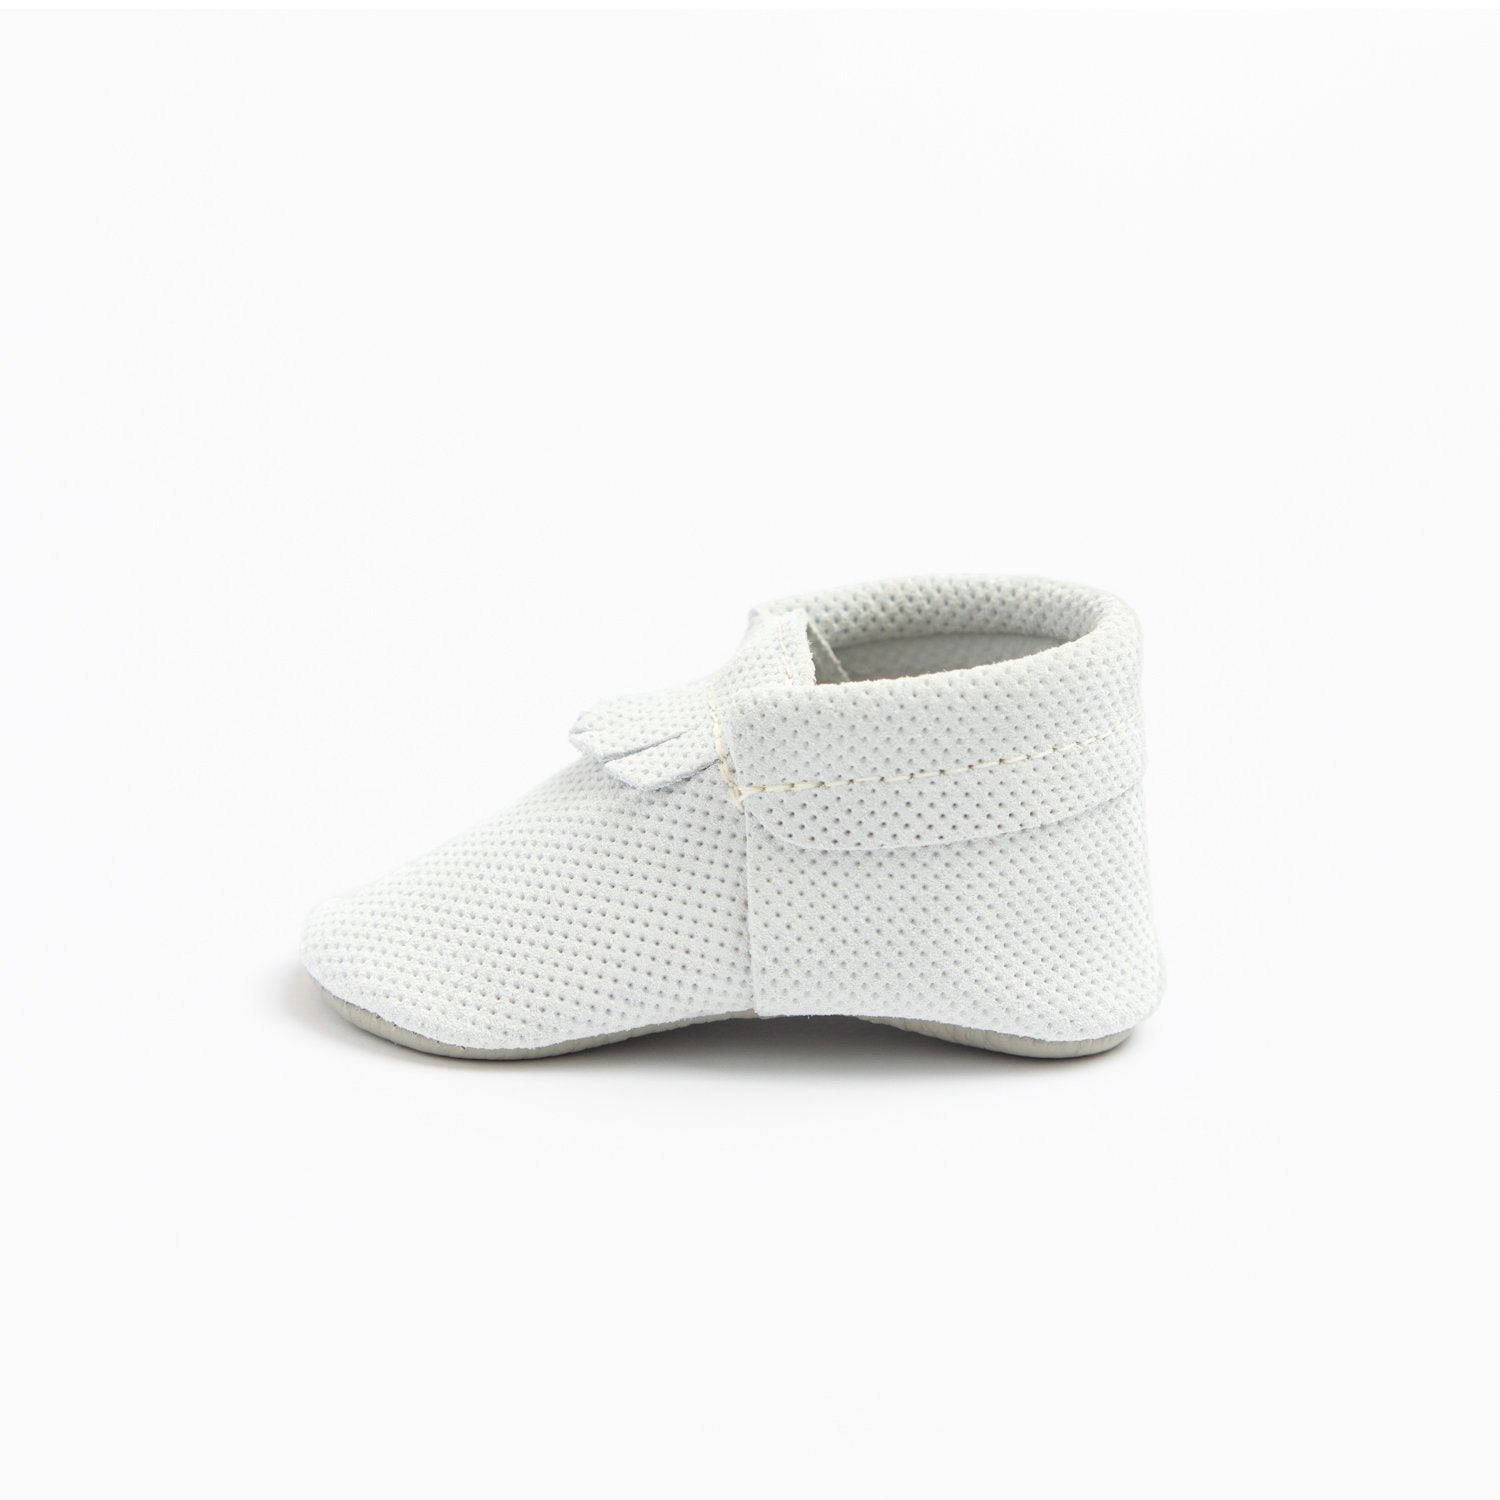 White Perforated Suede City Mocc City Moccs Soft Soles